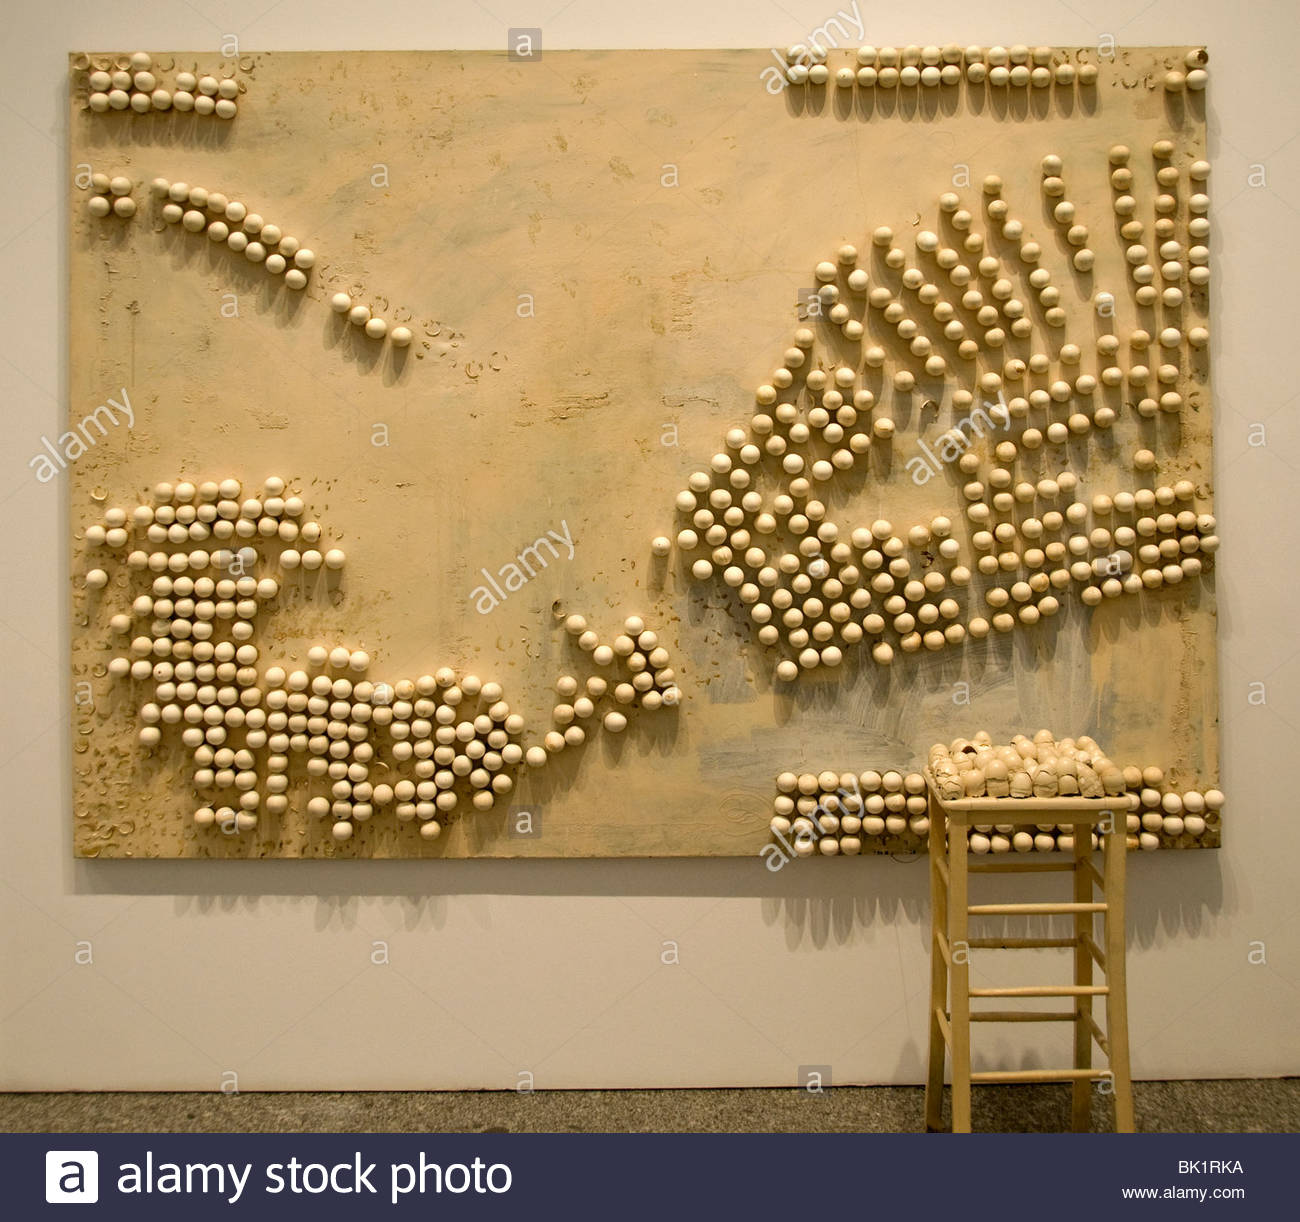 Marcel Broodthaers Belgian Belgium Painter Panel with eggs and stool - Stock Image